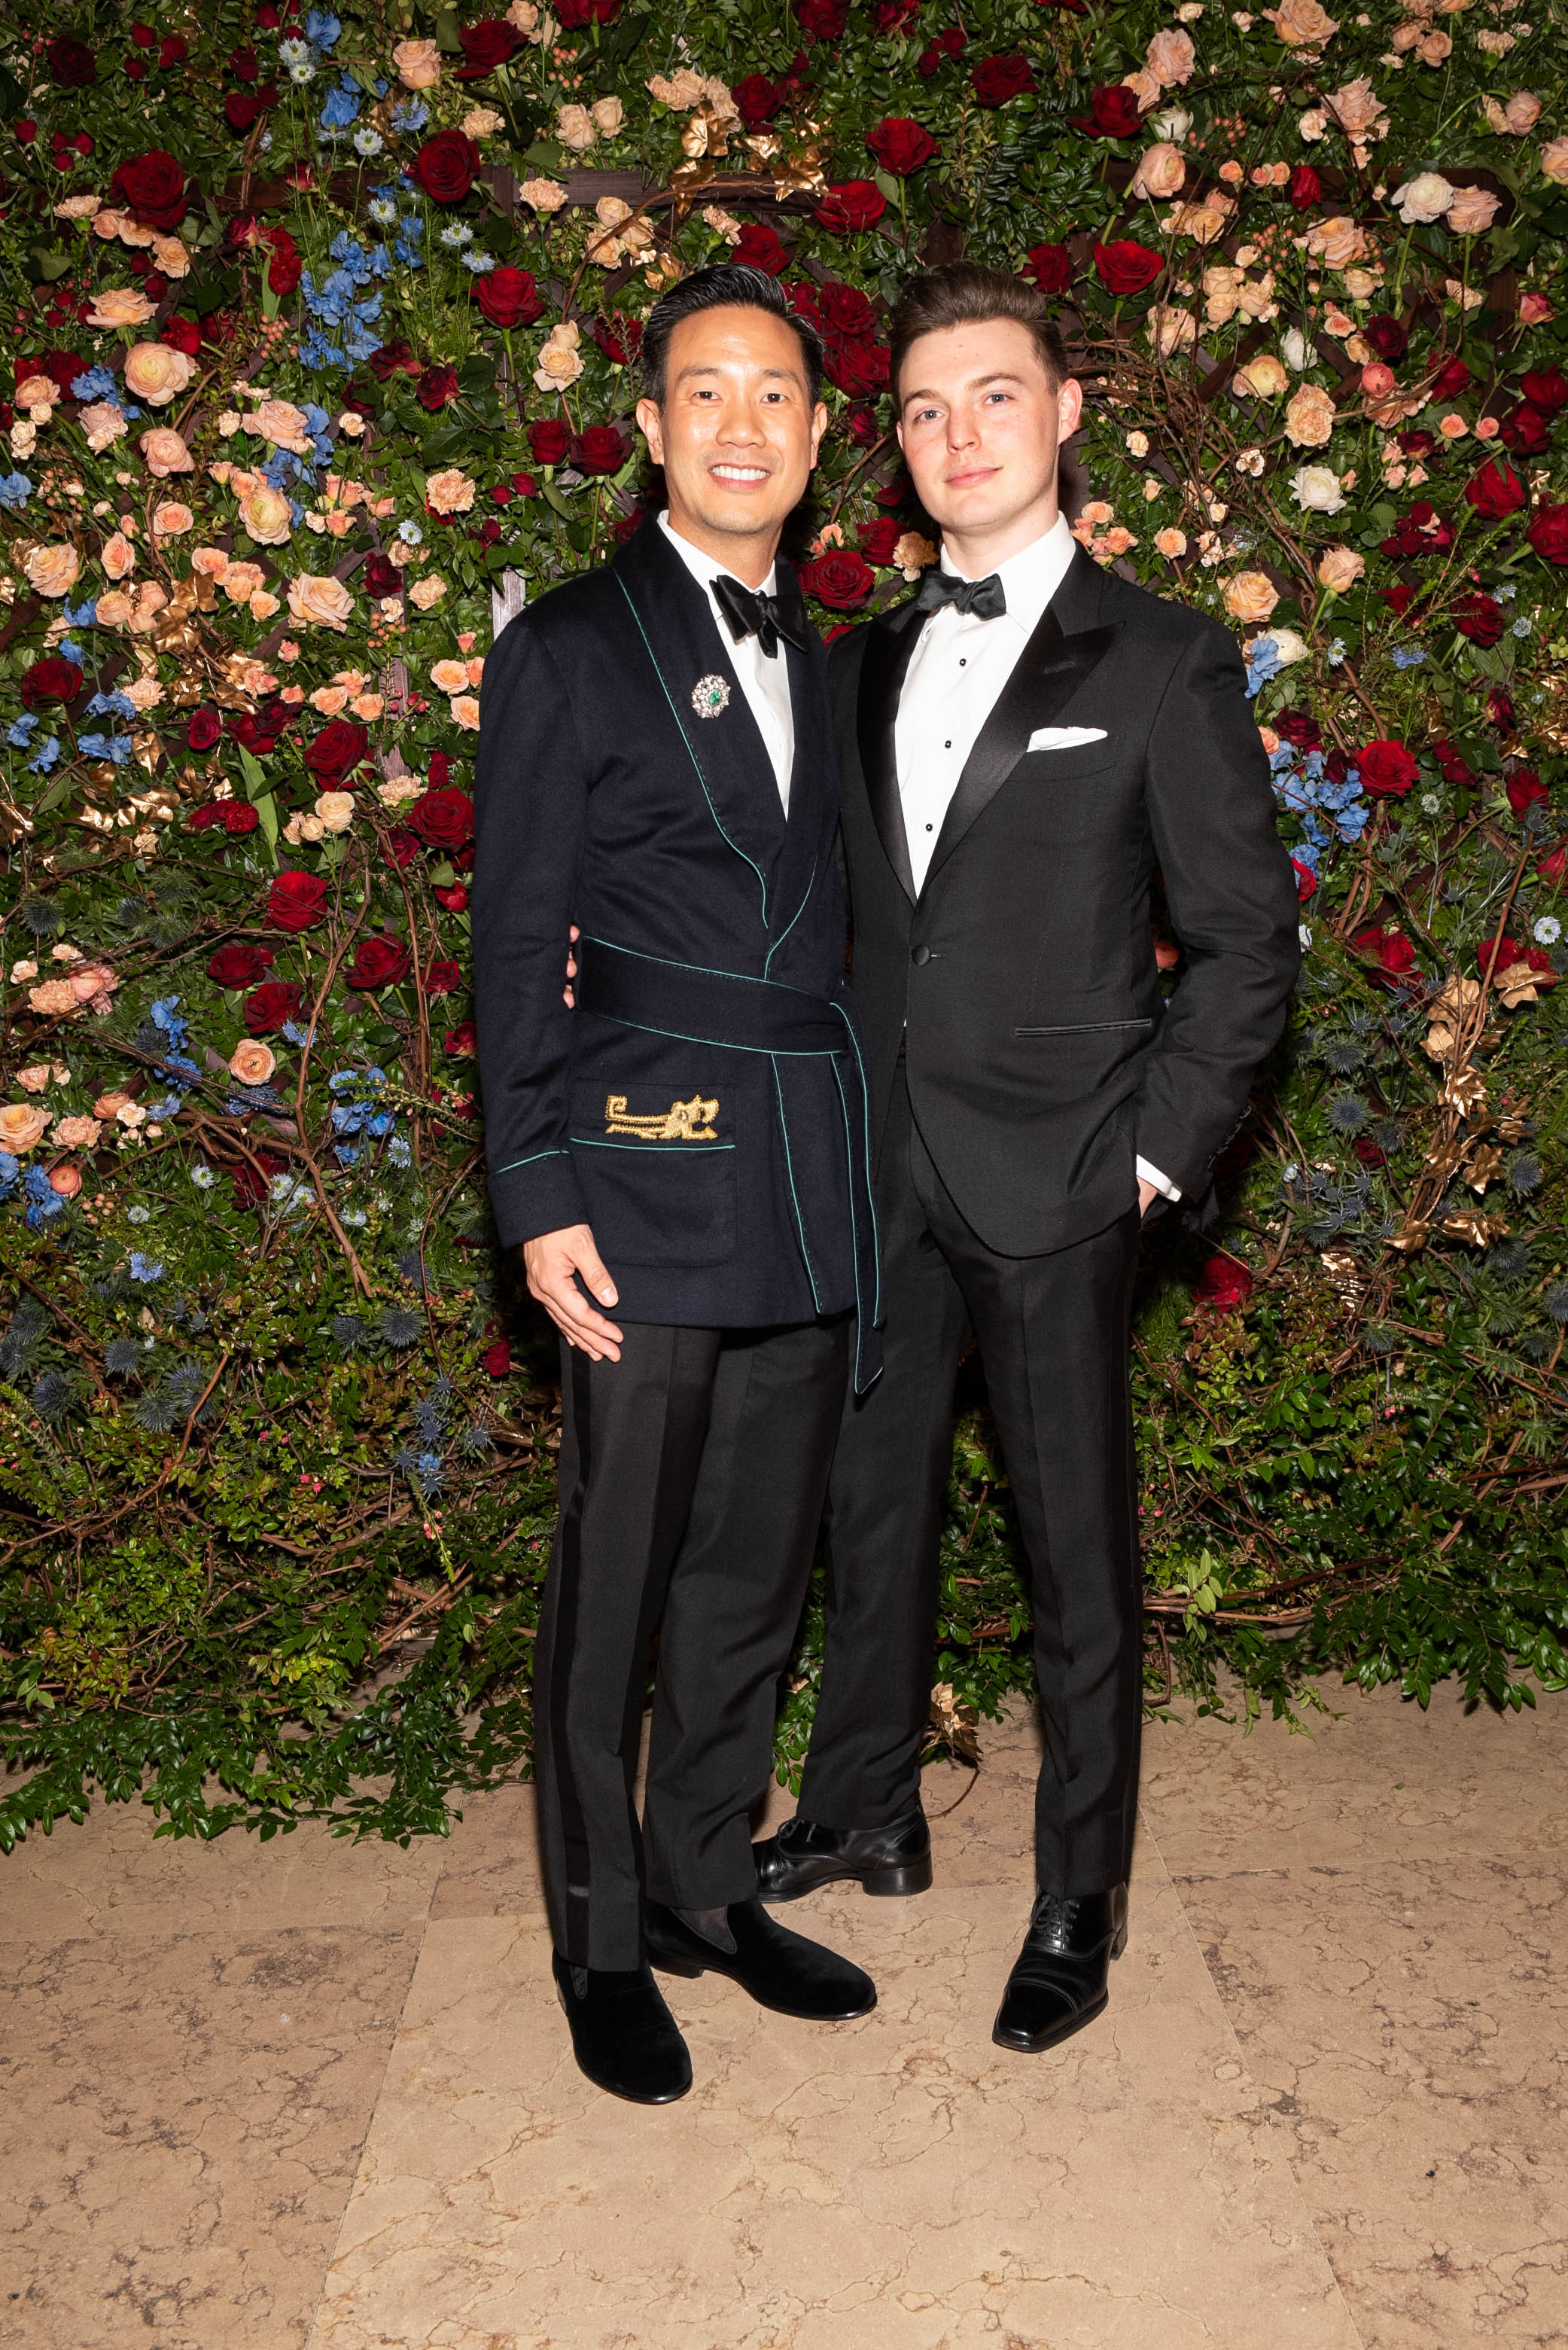 Dr. Tai-Heng Cheng and Cole Harrell attend The Frick Collection's 20th Annual Young Fellows Ball at 1 East 70th Street on Thursday, March 21st, 2019. Photography, Courtesy of The Frick Collection.